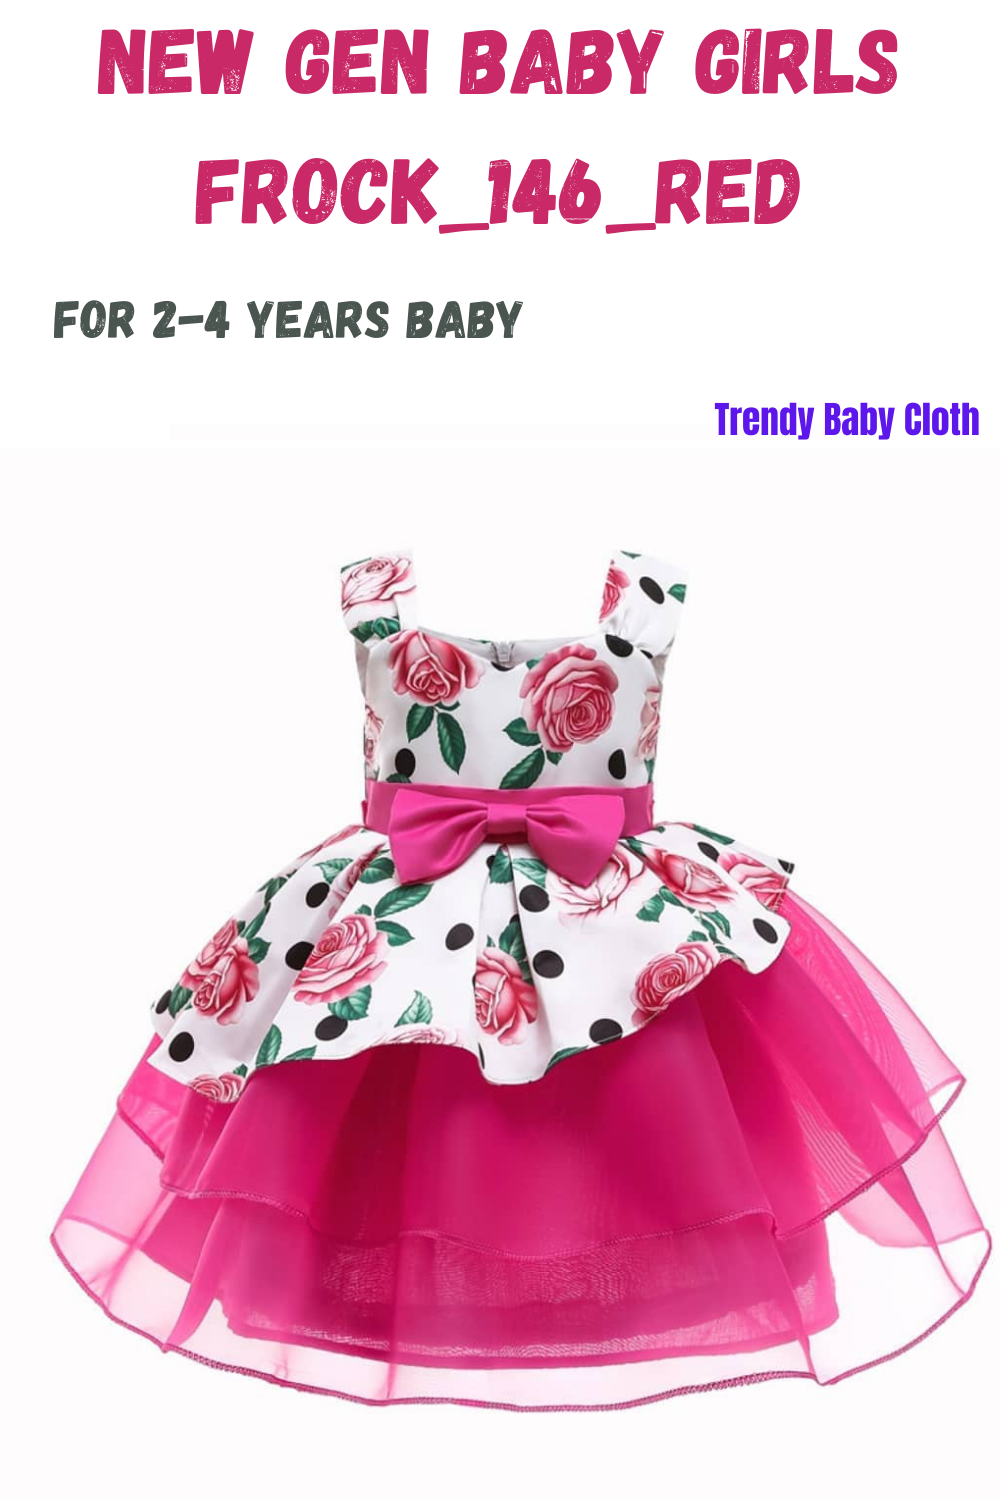 Elegant White and pink Color Frock Dress with pink flowers Pretty sequin work with velvet flowers. Material : Net It has satin and cotton lining and non pricky Ideal for all party occasions, birthday, festive and gifting #babyphotography #babyfever #ig #smallbusiness #kidsofinstagram #babystore #bajubayi #instababy